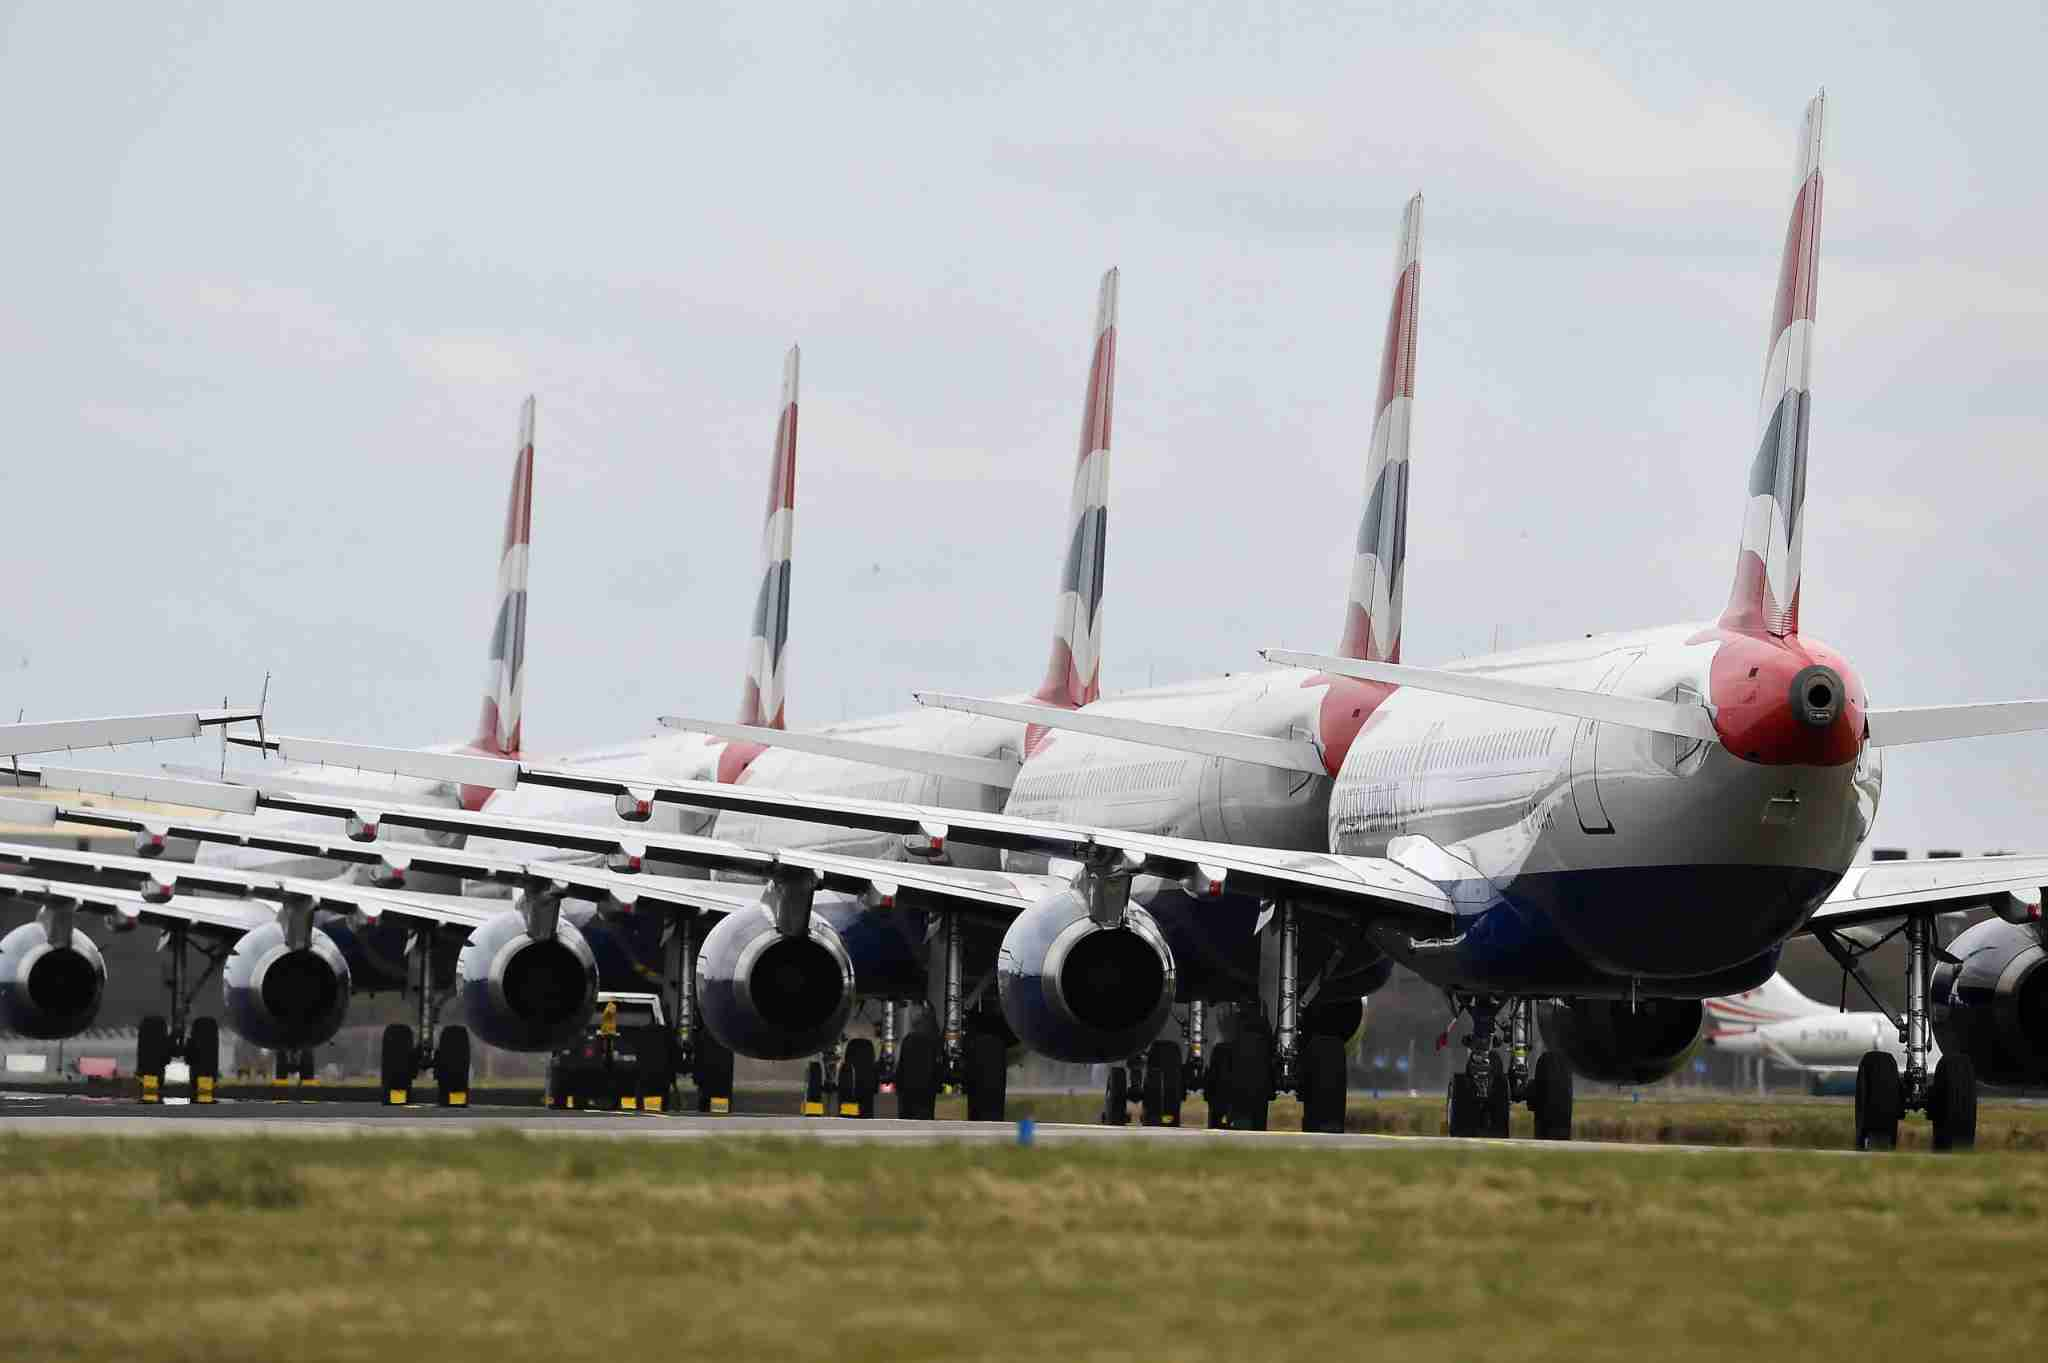 GLASGOW, SCOTLAND - MARCH 21: A grounded fleet of British Airway planes sit on the runway at Glasgow Airport on March 21, 2020 in Glasgow, Scotland. Coronavirus (COVID-19) has spread to at least 186 countries, claiming nearly 12,000 lives and infecting more than 286,000 people. There have now been 3,983 diagnosed cases in the UK and 177 deaths. (Photo by Jeff J Mitchell/Getty Images)